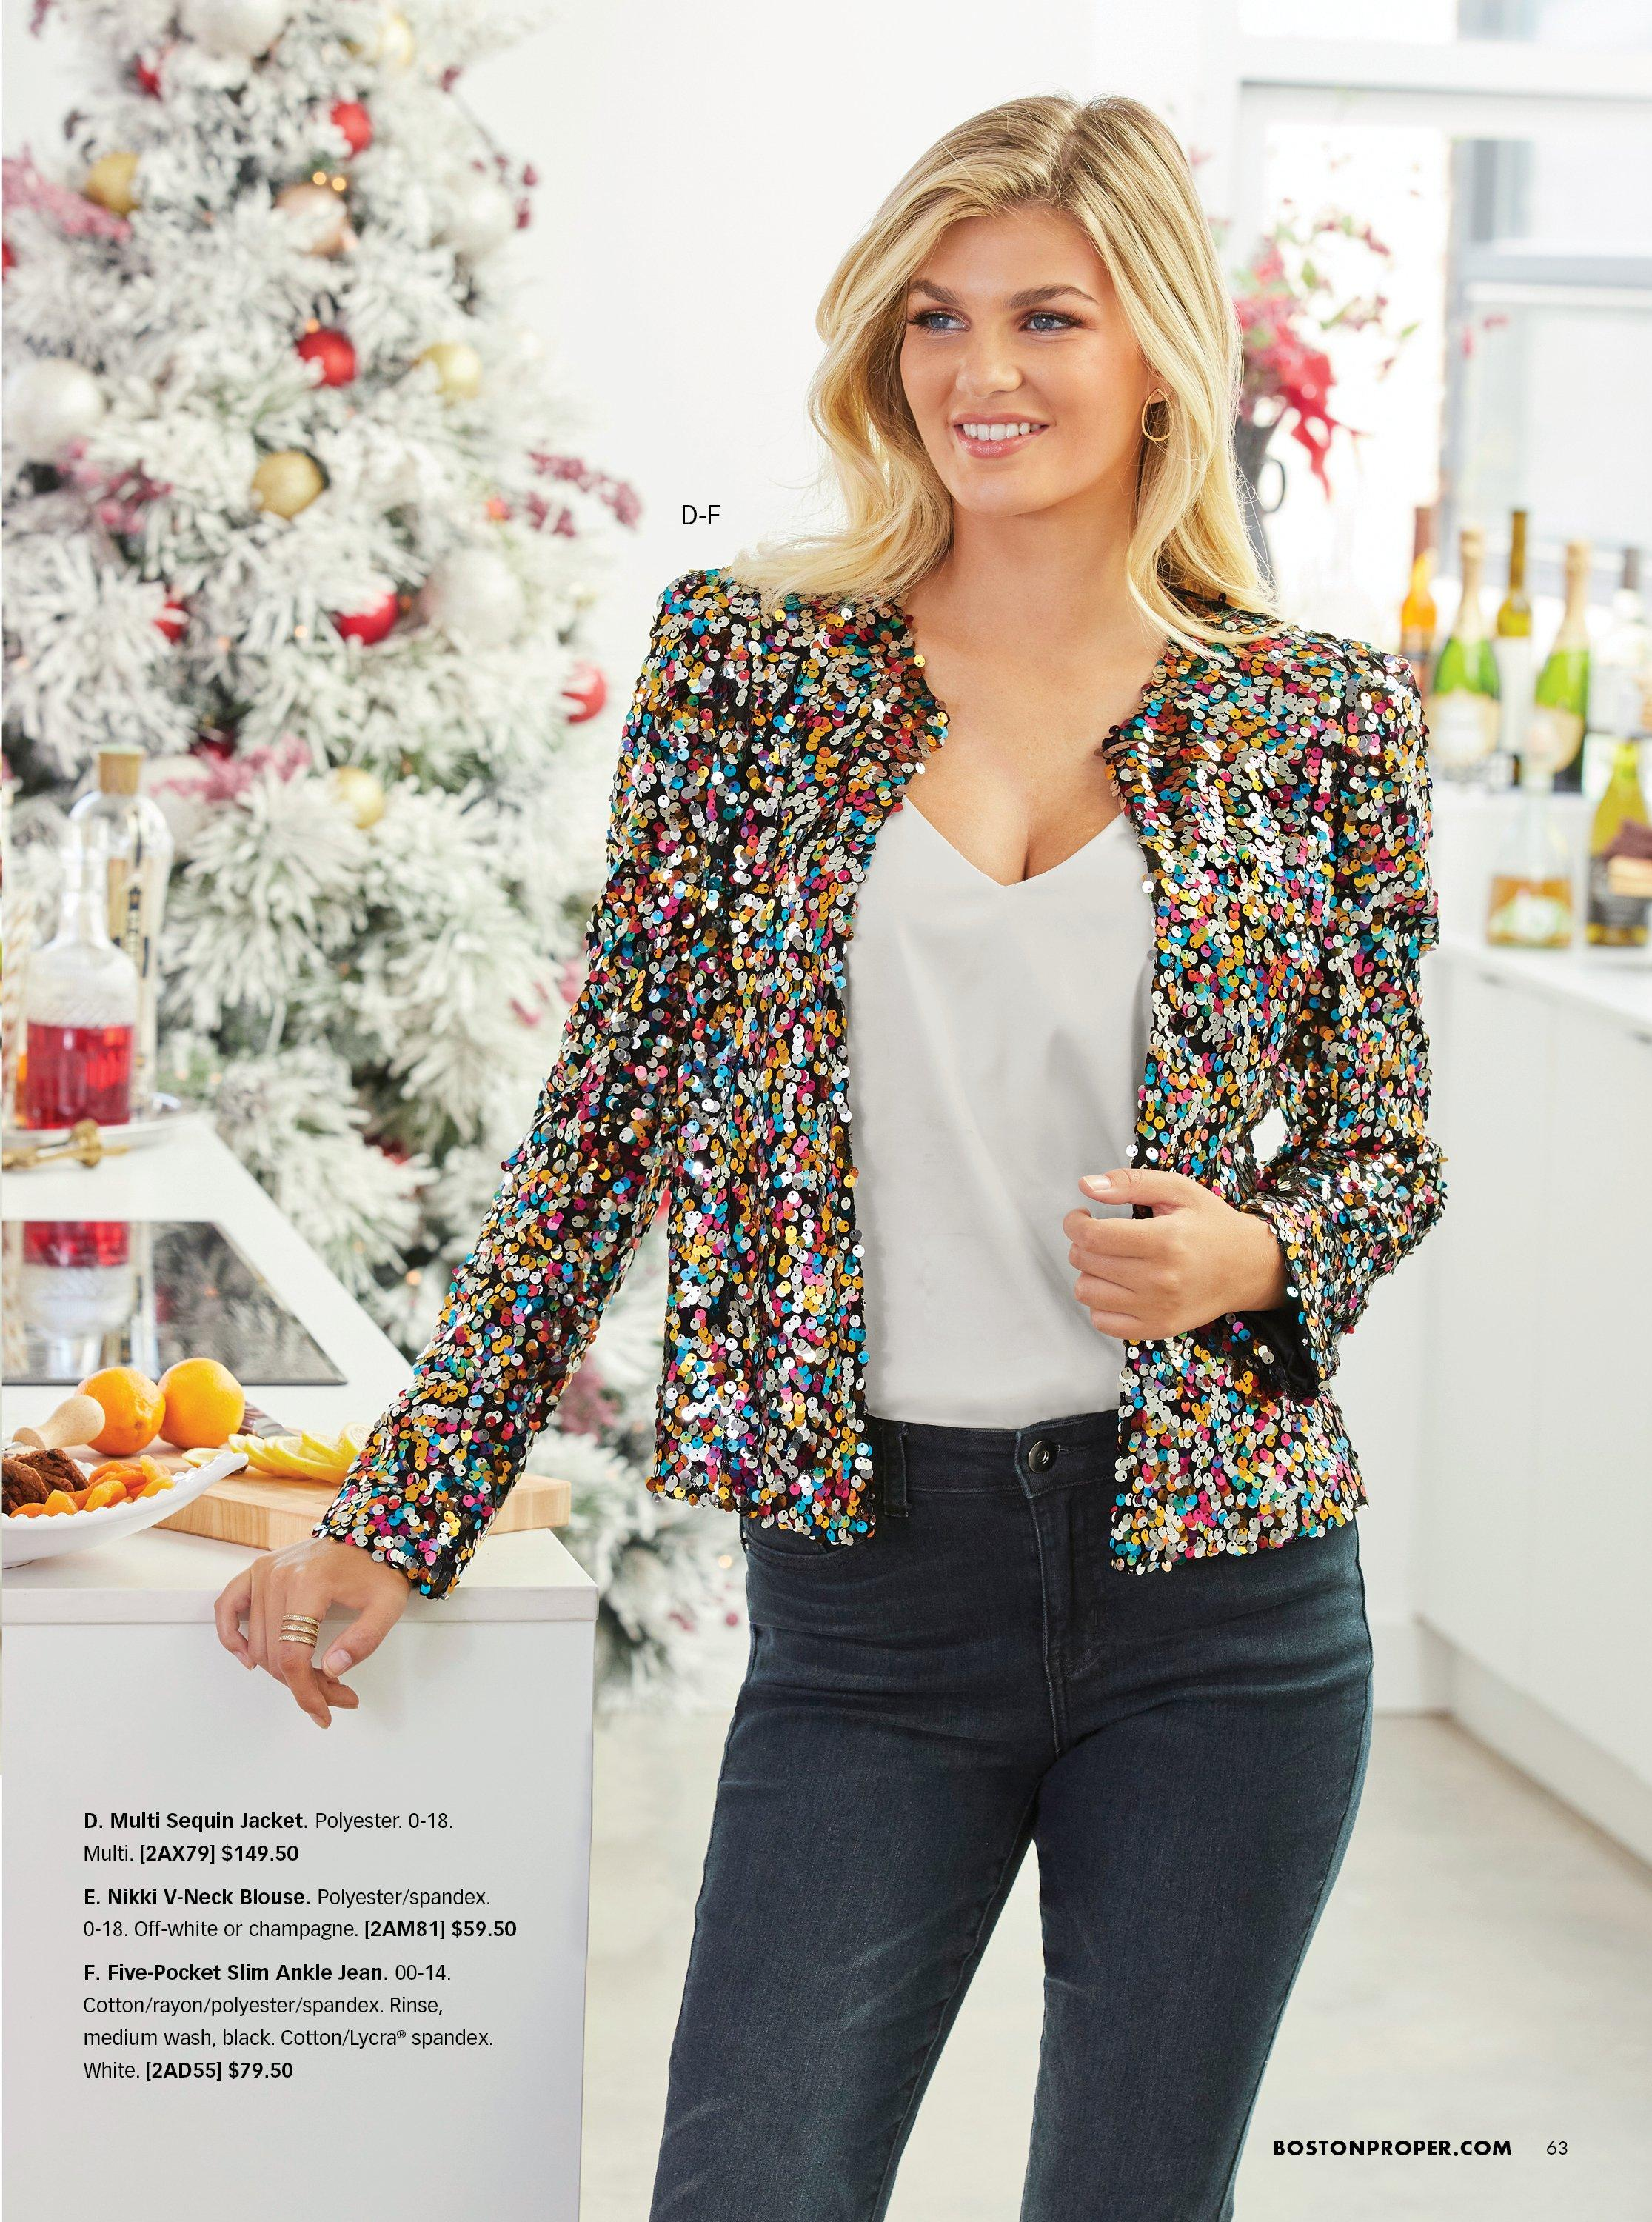 model wearing a multicolored sequin blazer, white v-neck charm tank top, and jeans.